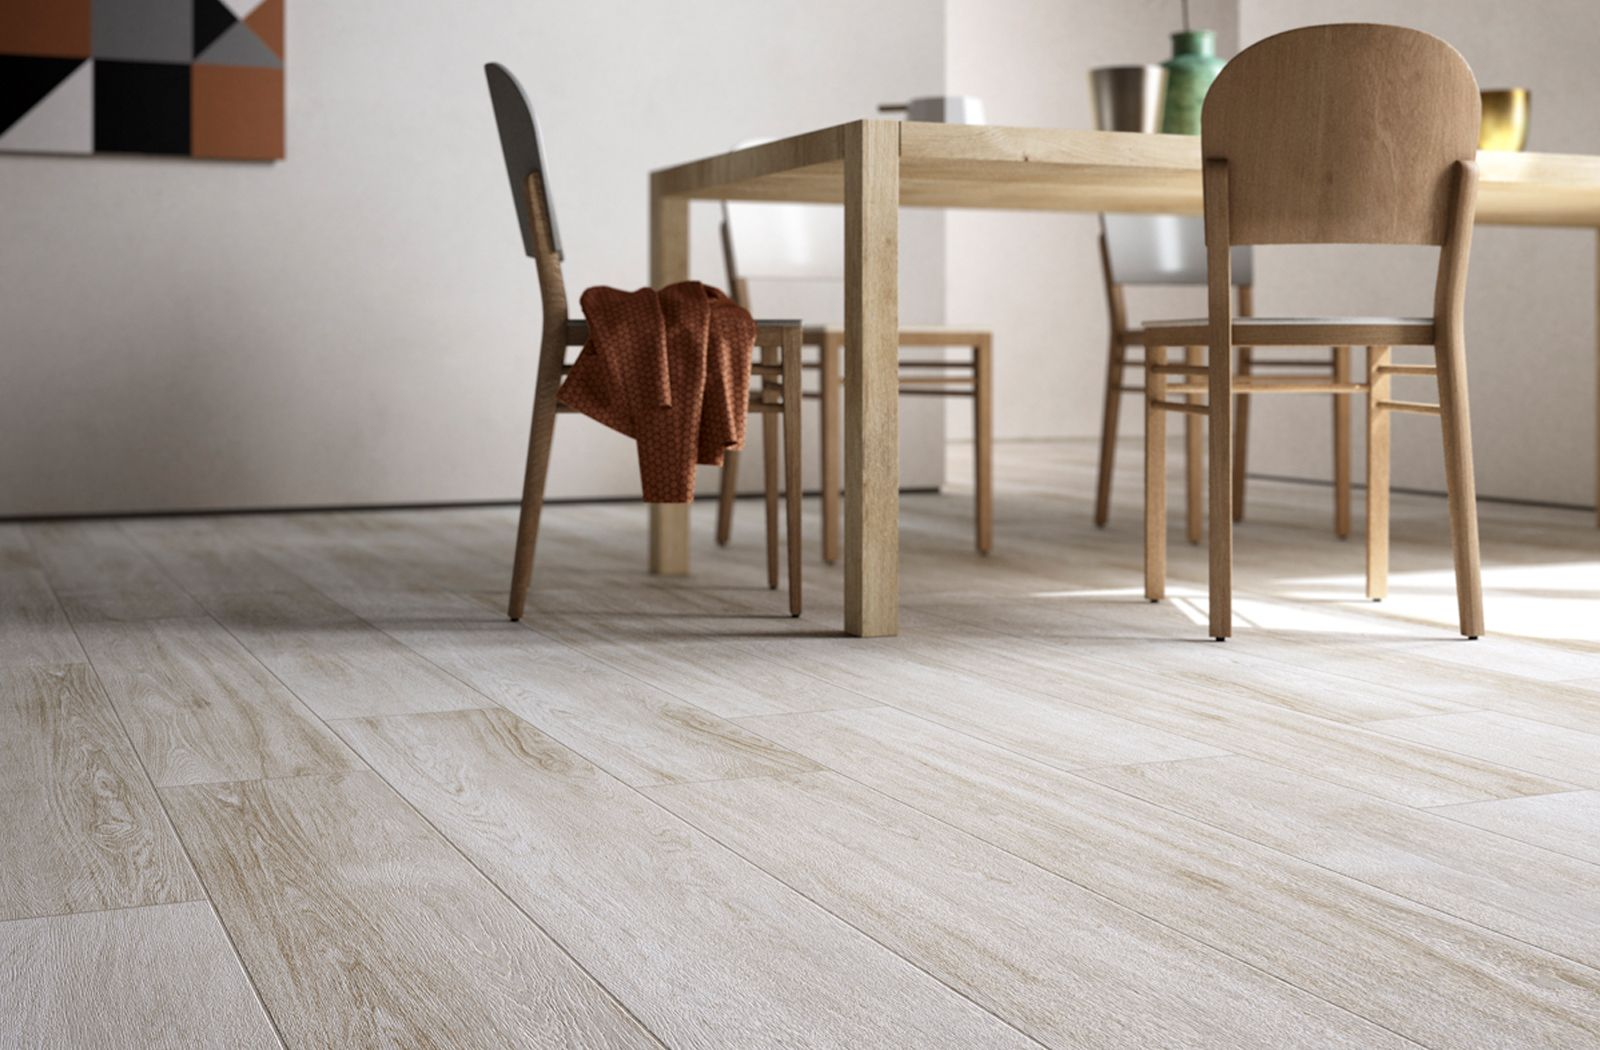 In recent years, Wood effect tiles has been the design to go for when  homeowners select their house flooring